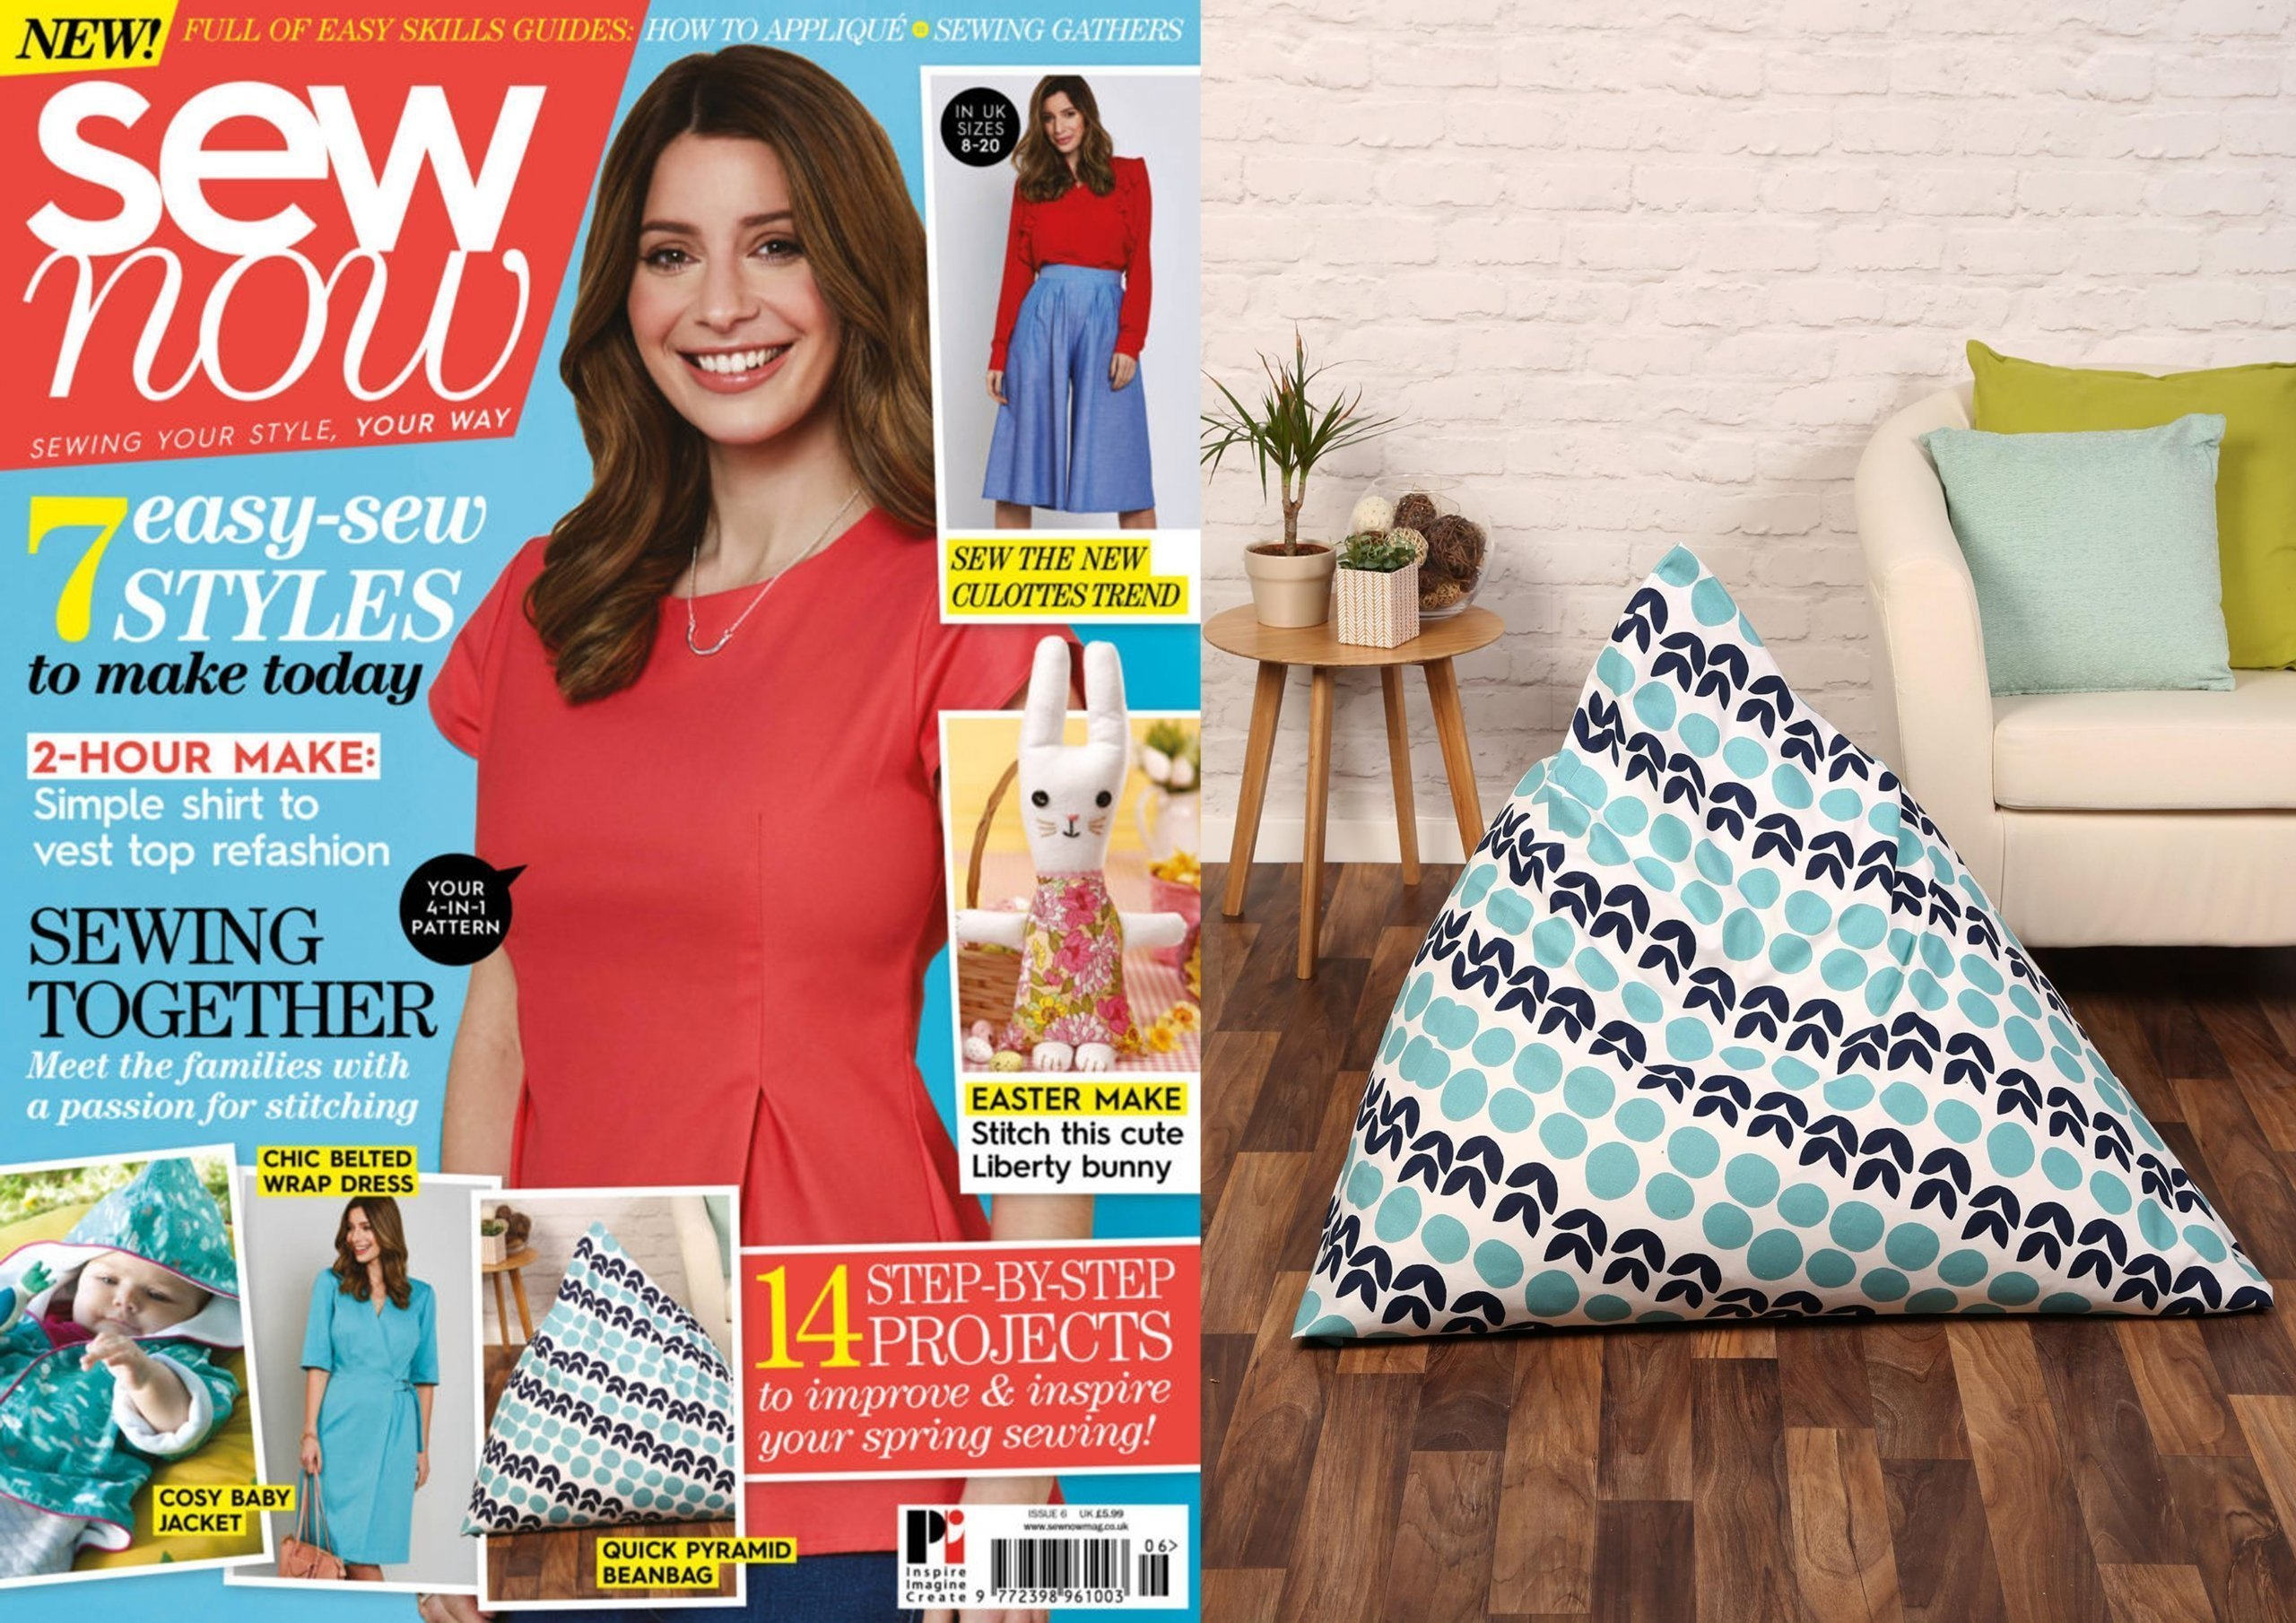 Pyramid Beanbag Feature in Sew Now magazine